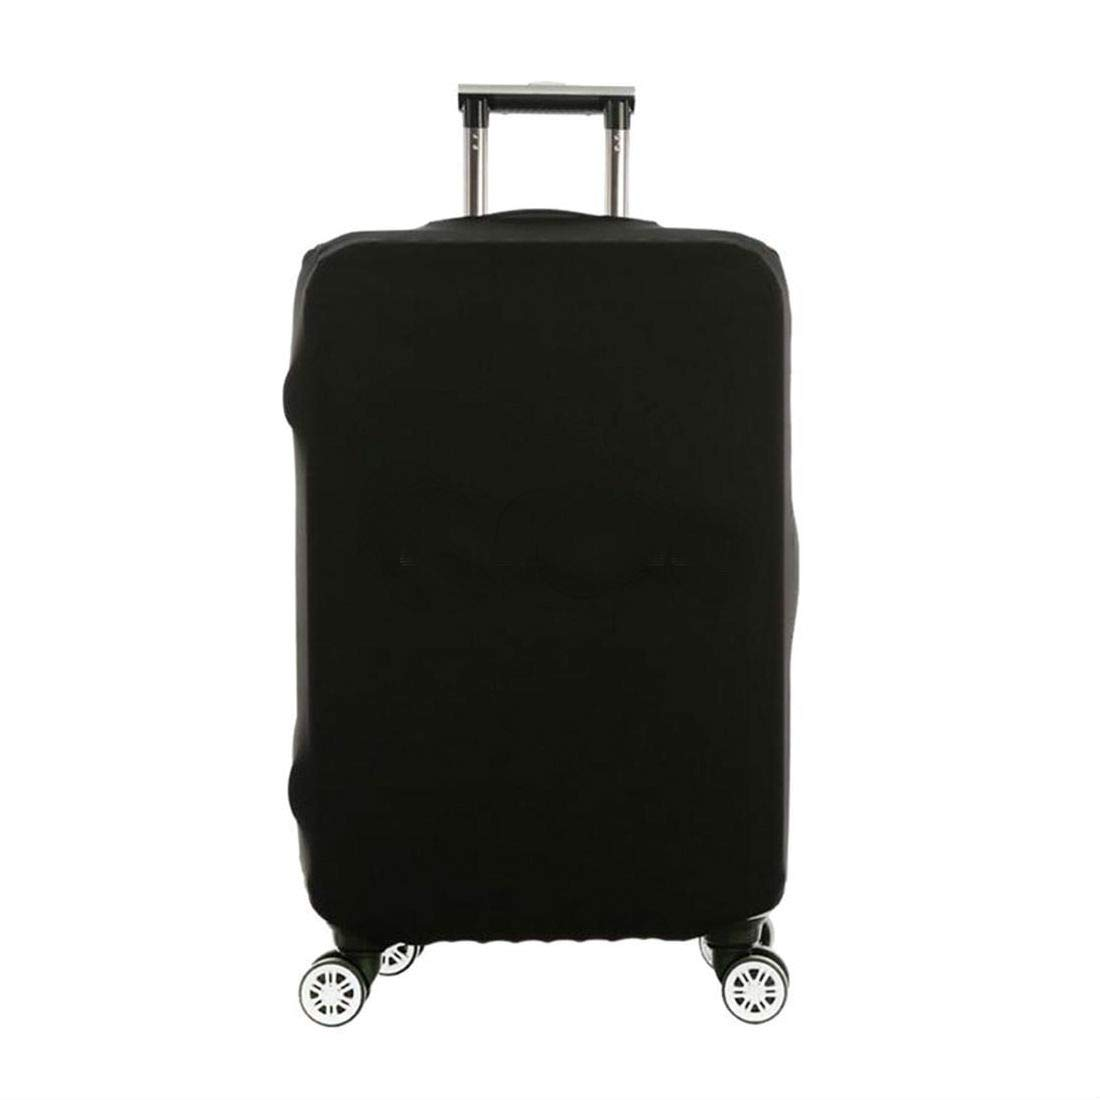 Black Elastic Luggage Suitcase Bags Cover Protector Anti scratch 18'' 20'' 22'' 24'' 28'' (M - (22''''-24'')) by Unknown